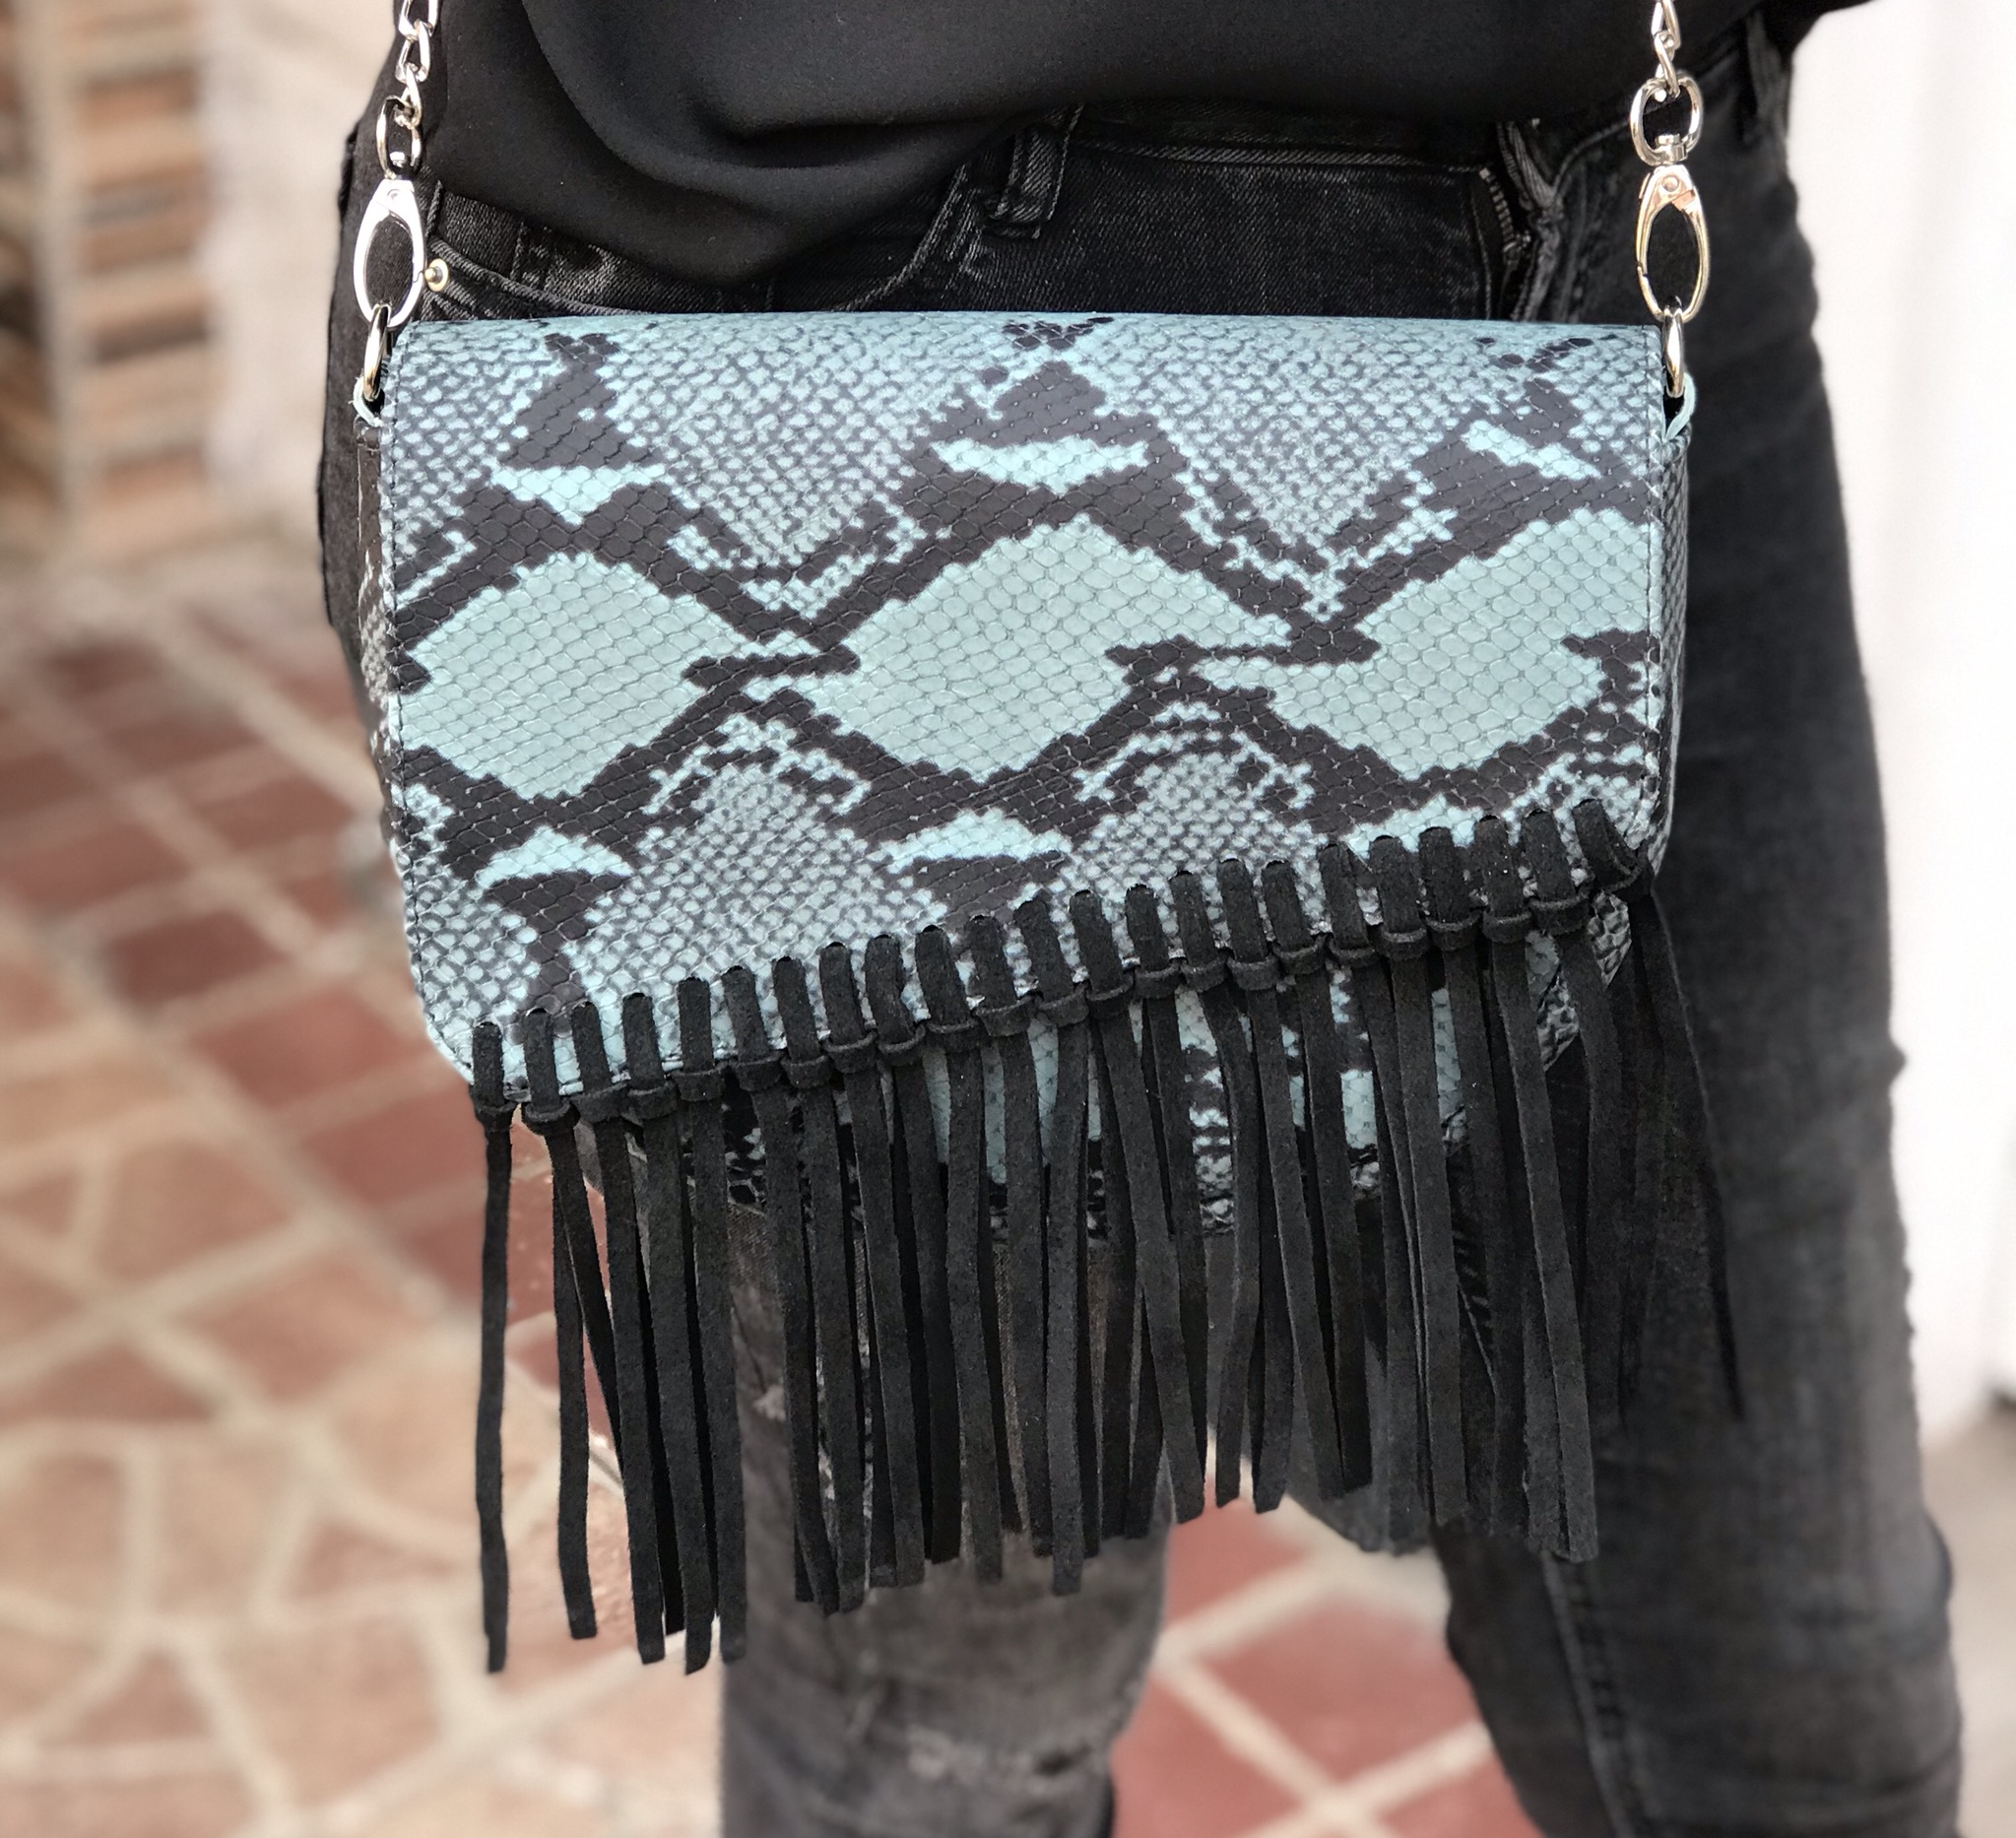 Bag leather croco green black with fringes black suedeleather